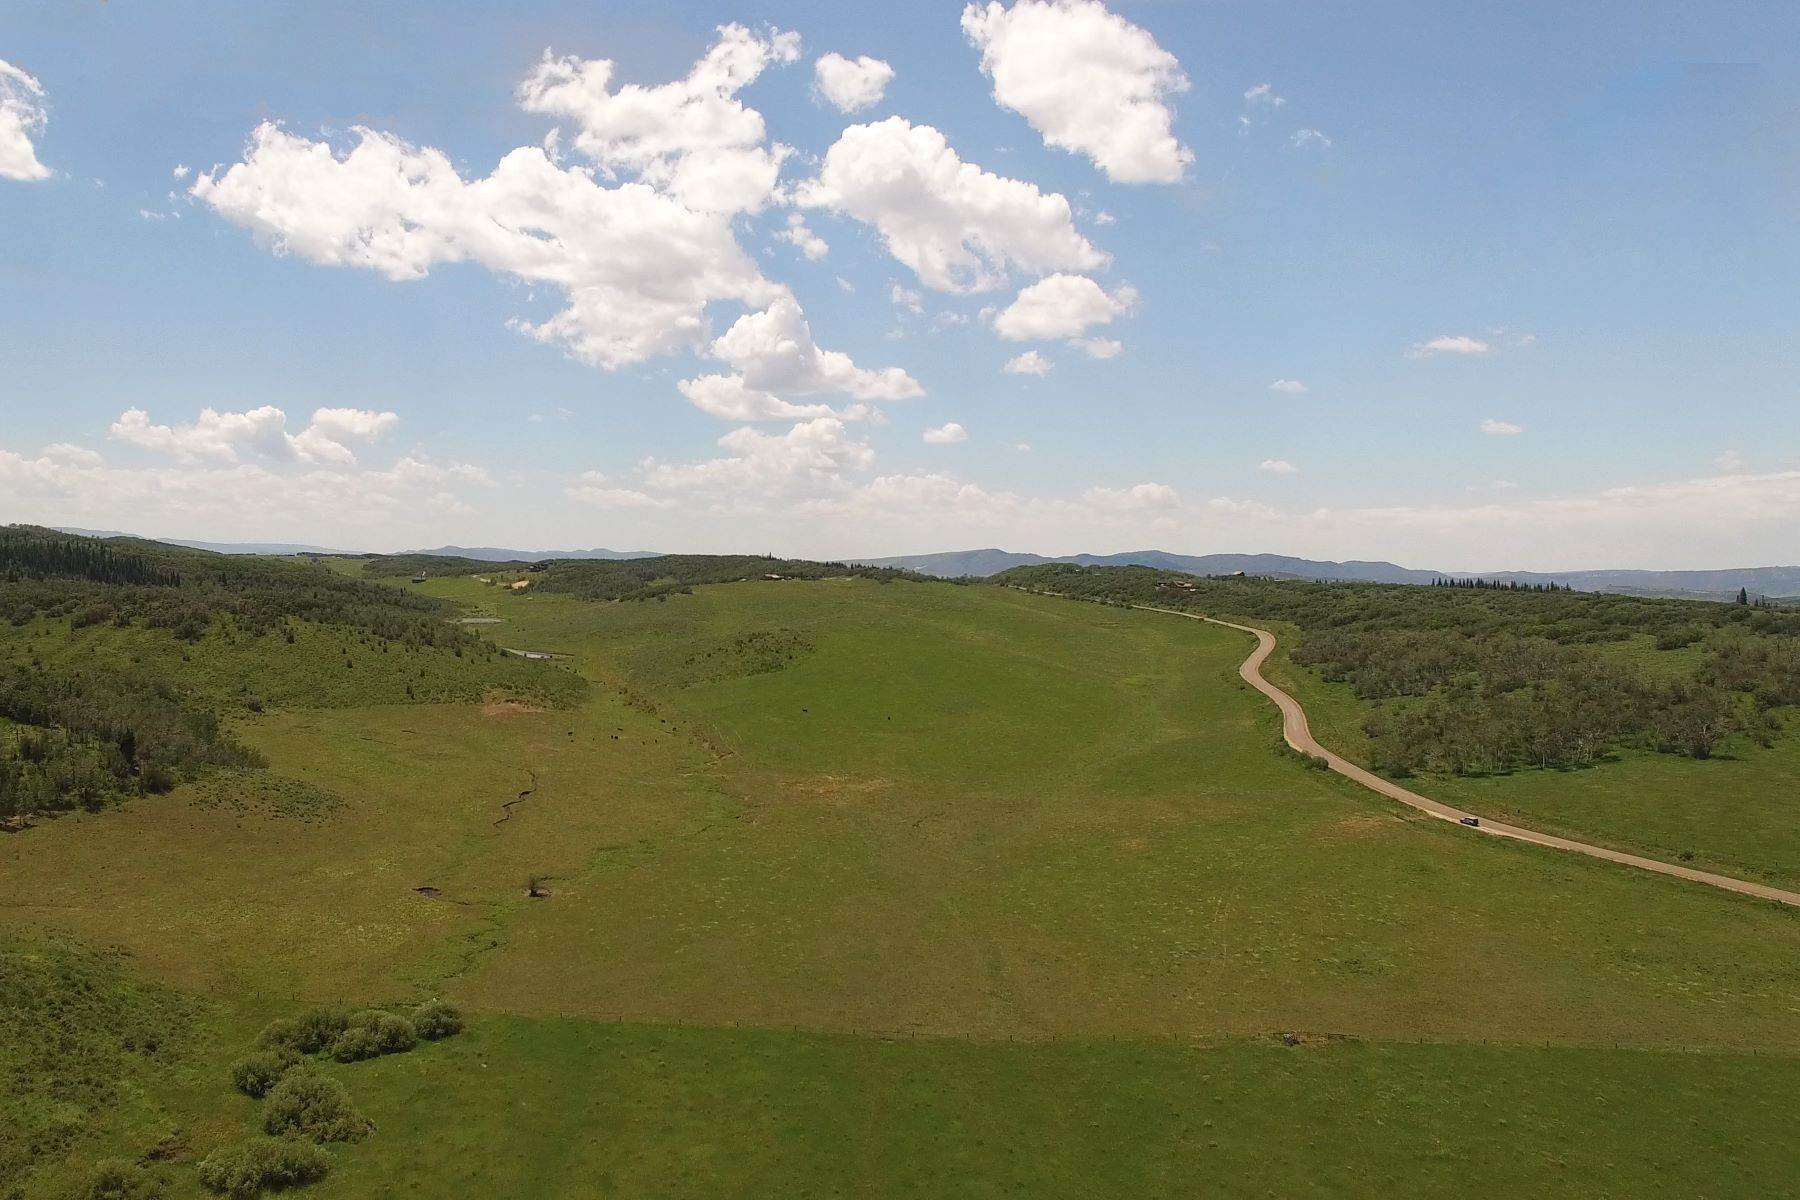 Land for Sale at 120 Acres on County Road 43 RCR 43 Steamboat Springs, Colorado 80487 United States